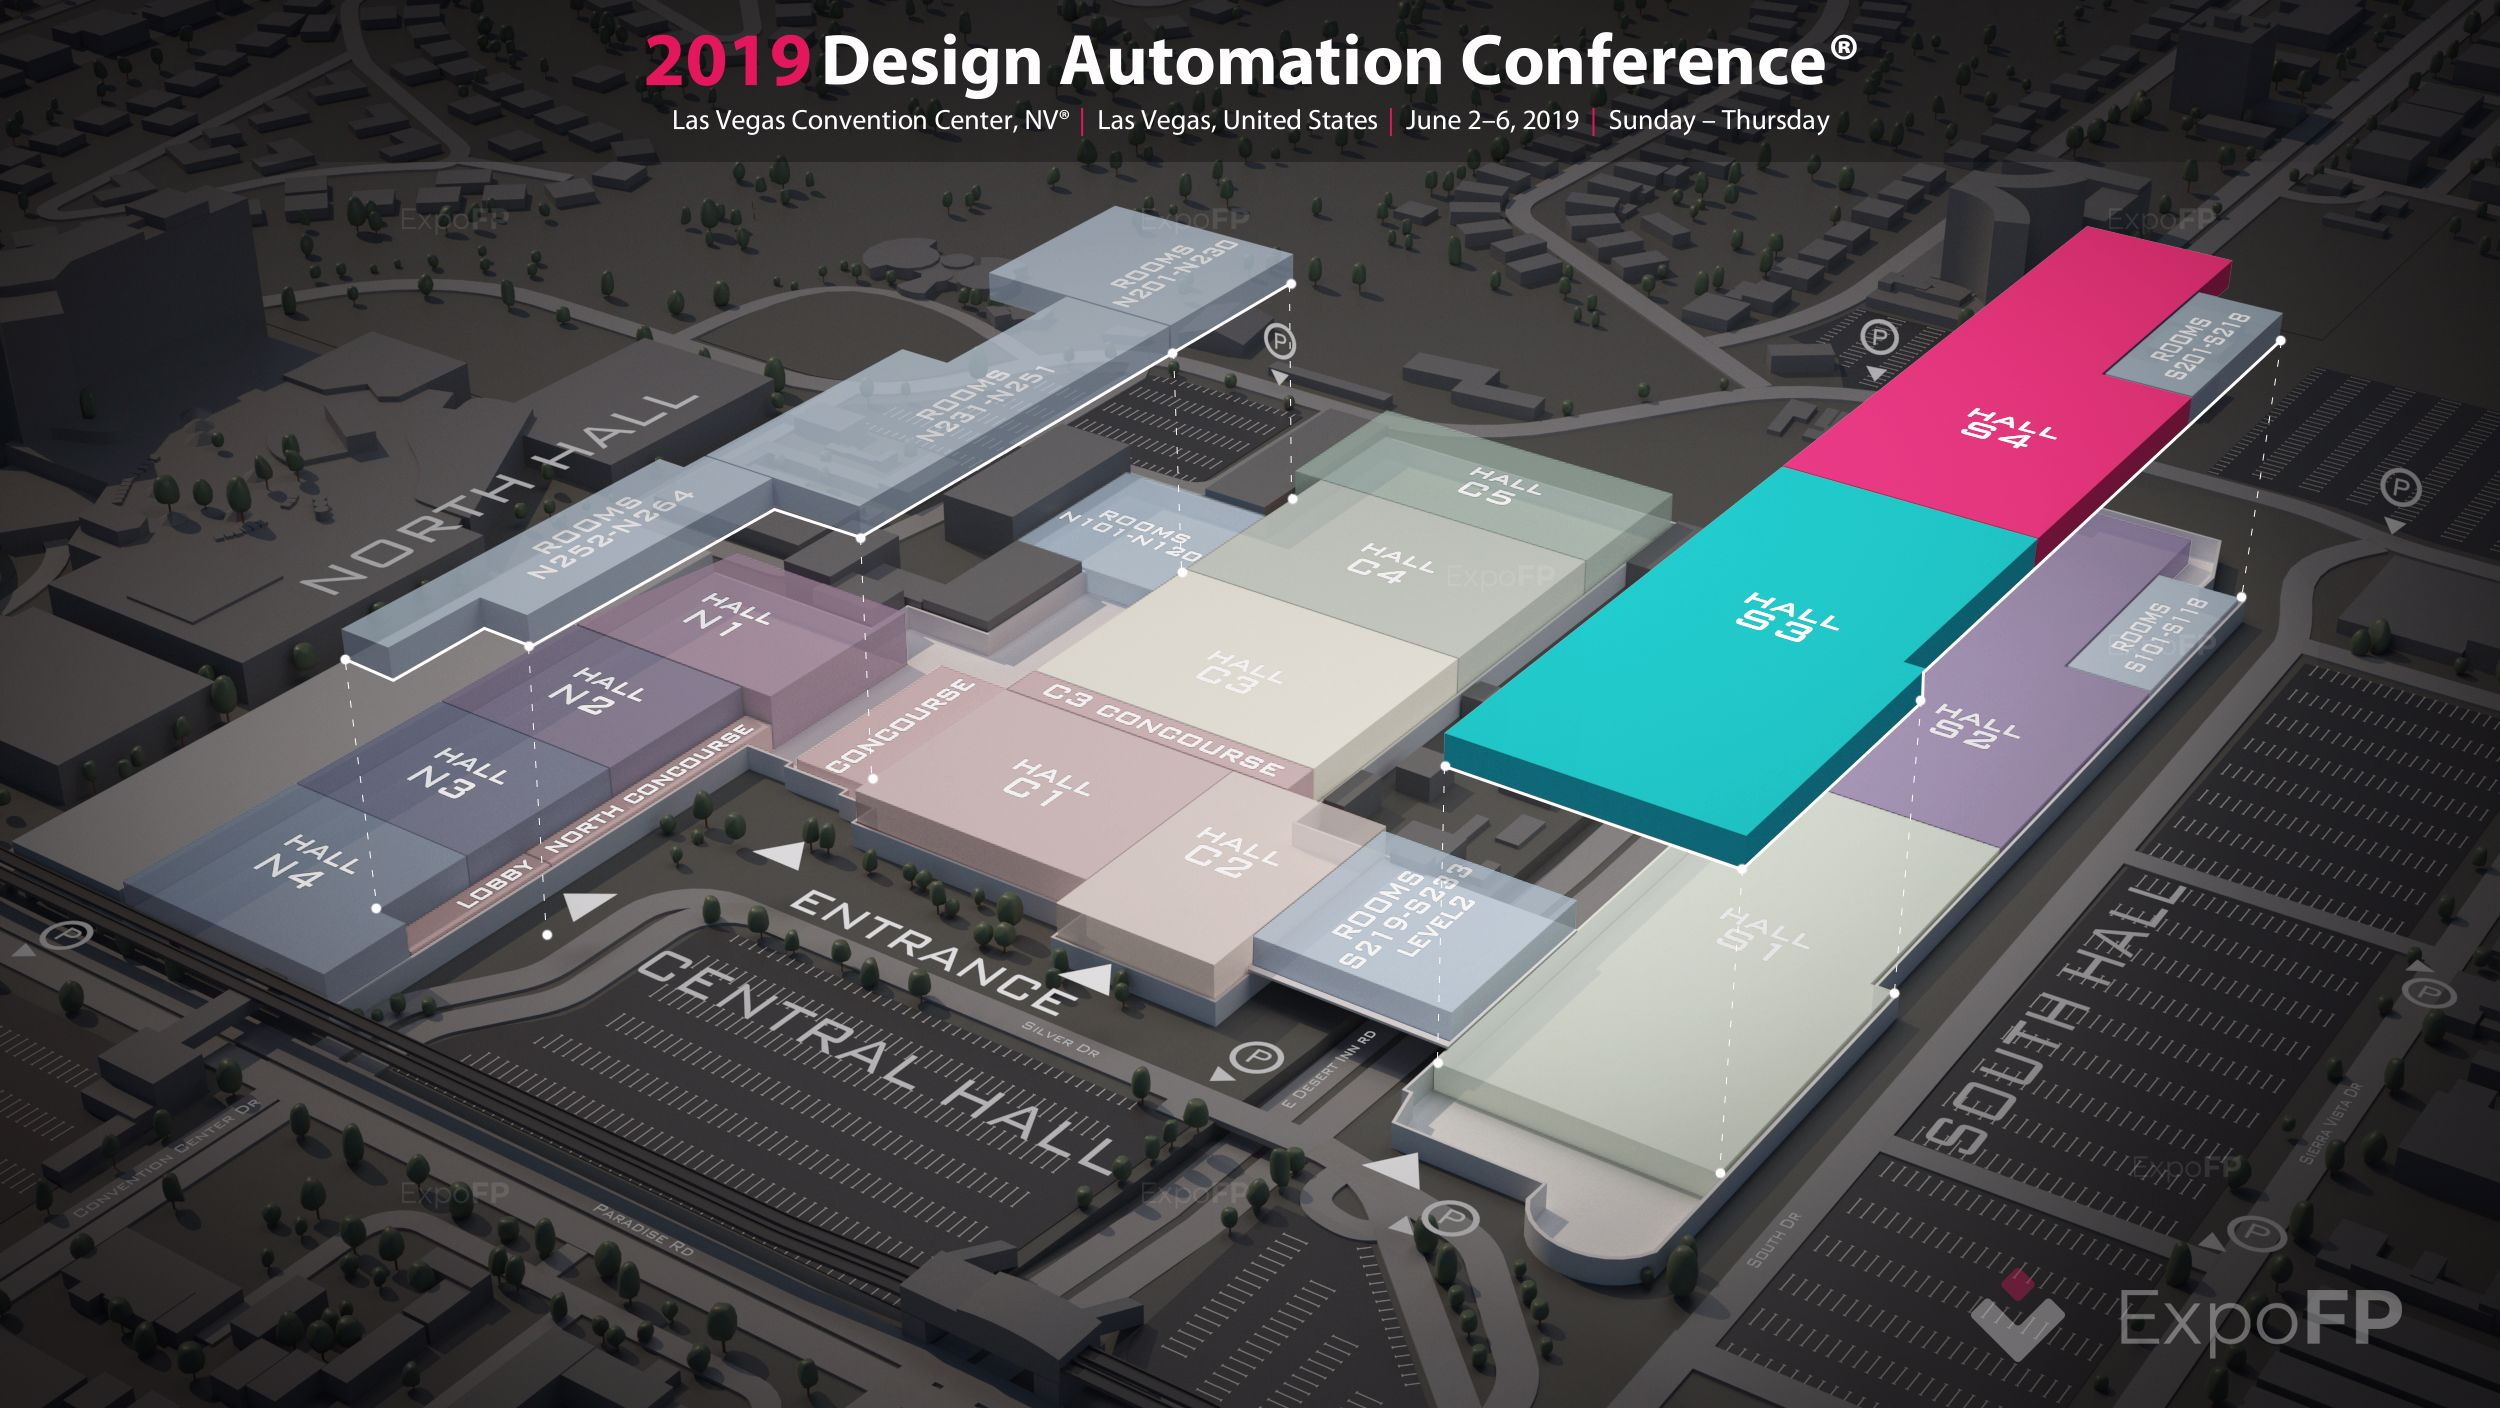 Design Automation Conference 2019 in Las Vegas Convention Center